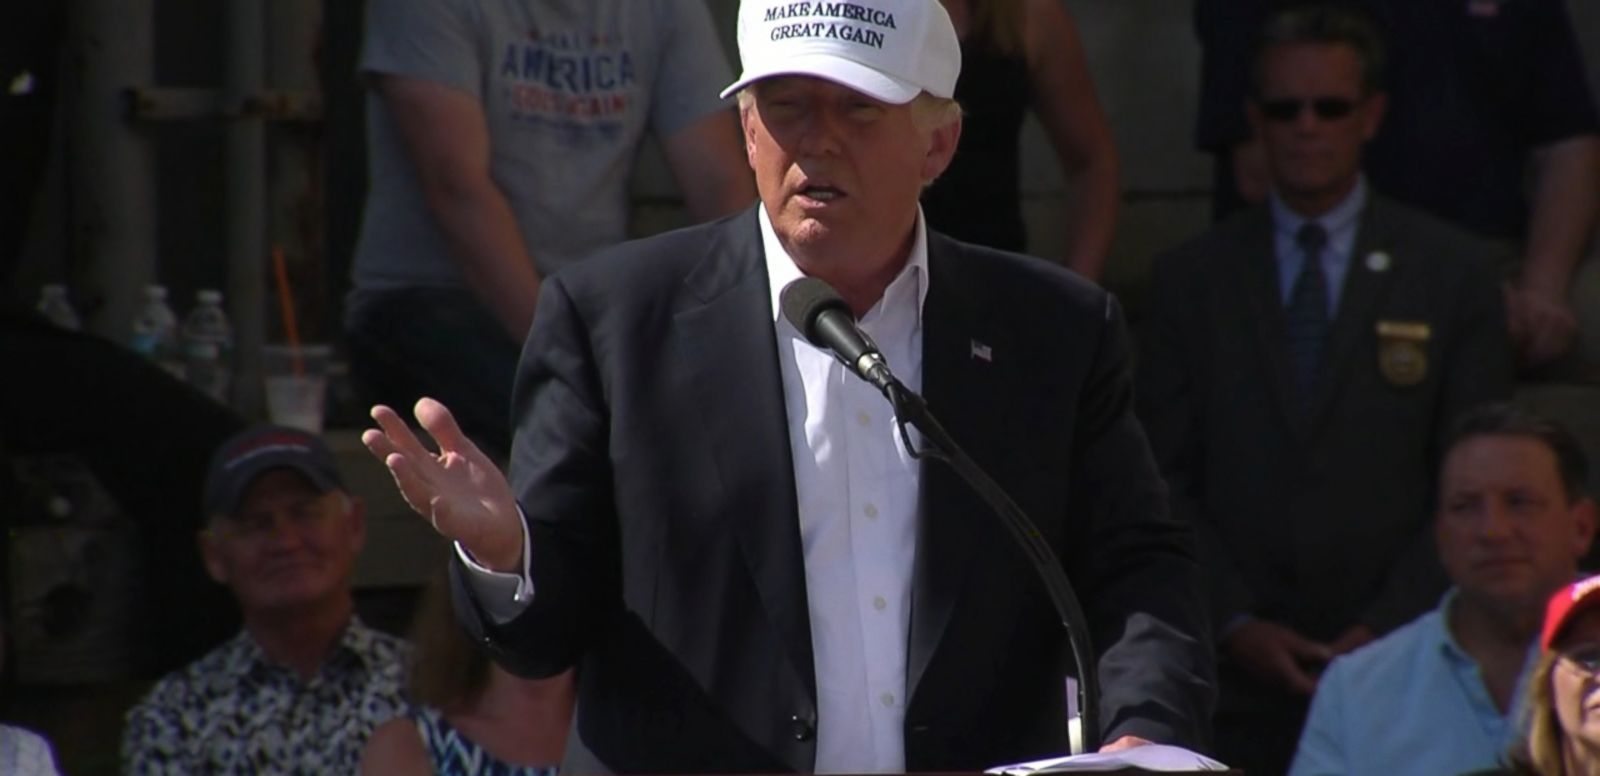 VIDEO: A woman at a Trump event in New Hampshire raised the issue on Thursday.